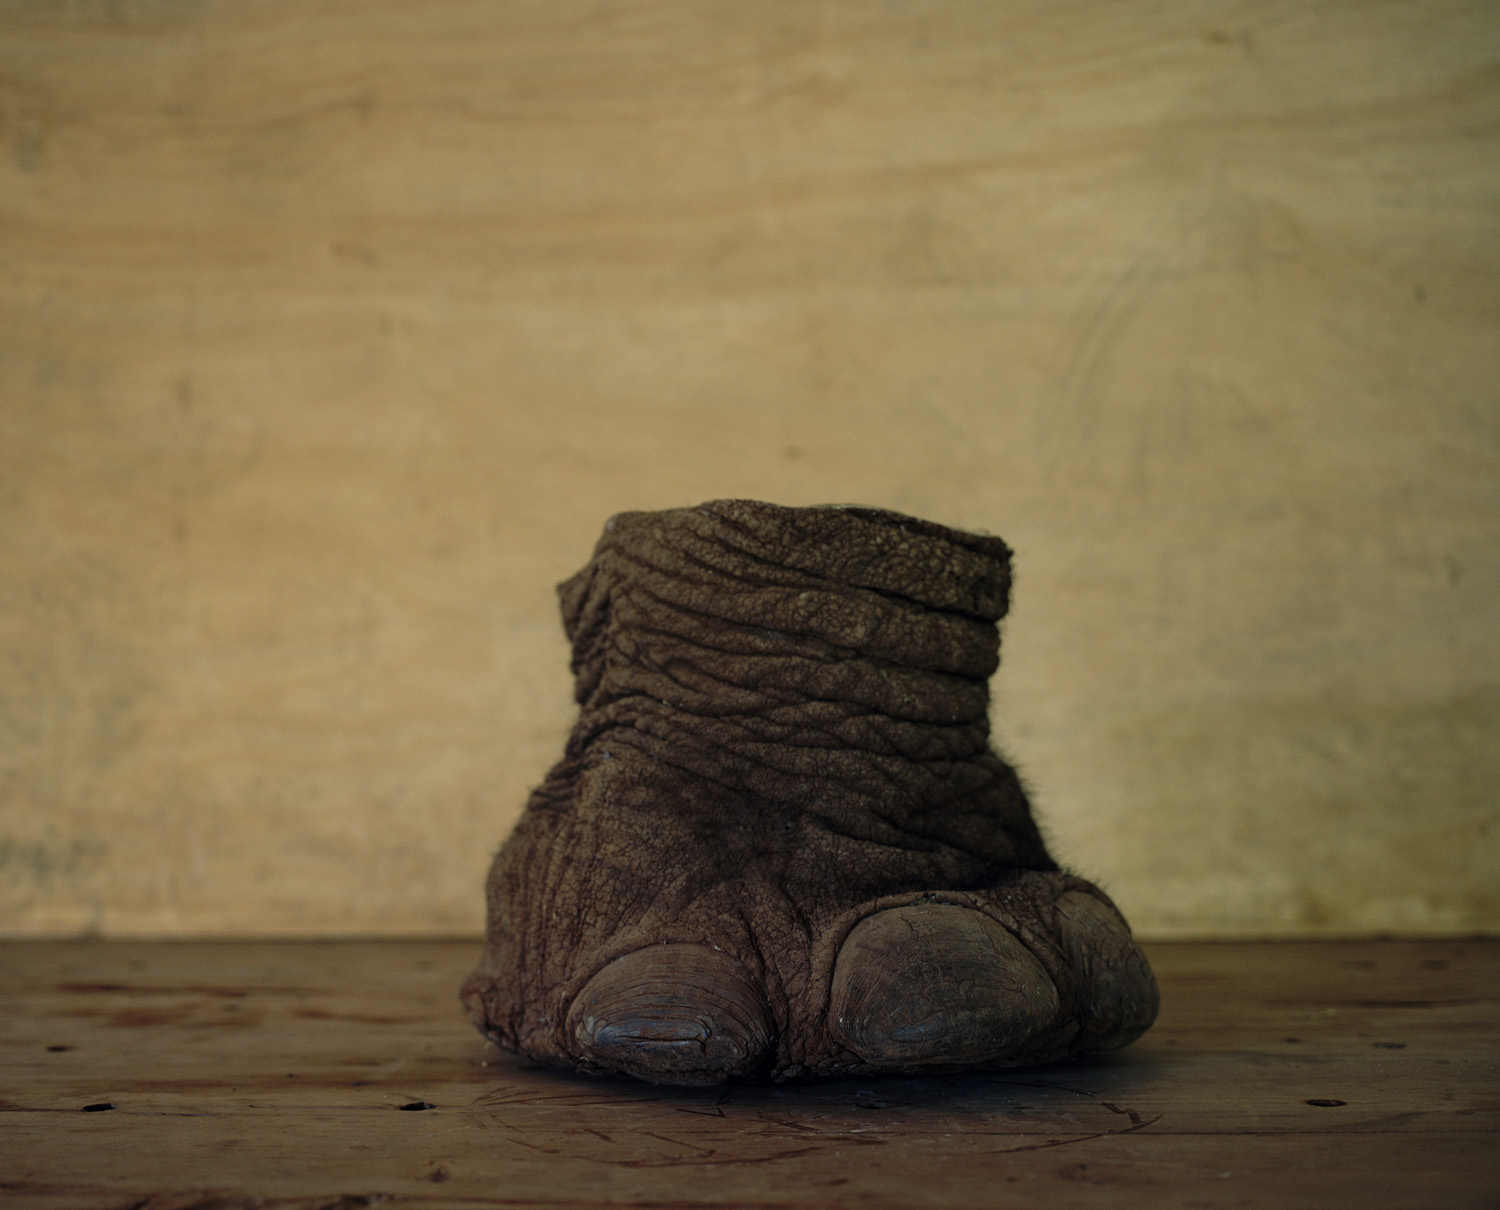 An elephant's foot, northern Kenya. Elephant's feet are used as waste paper bins and umbrella stands.